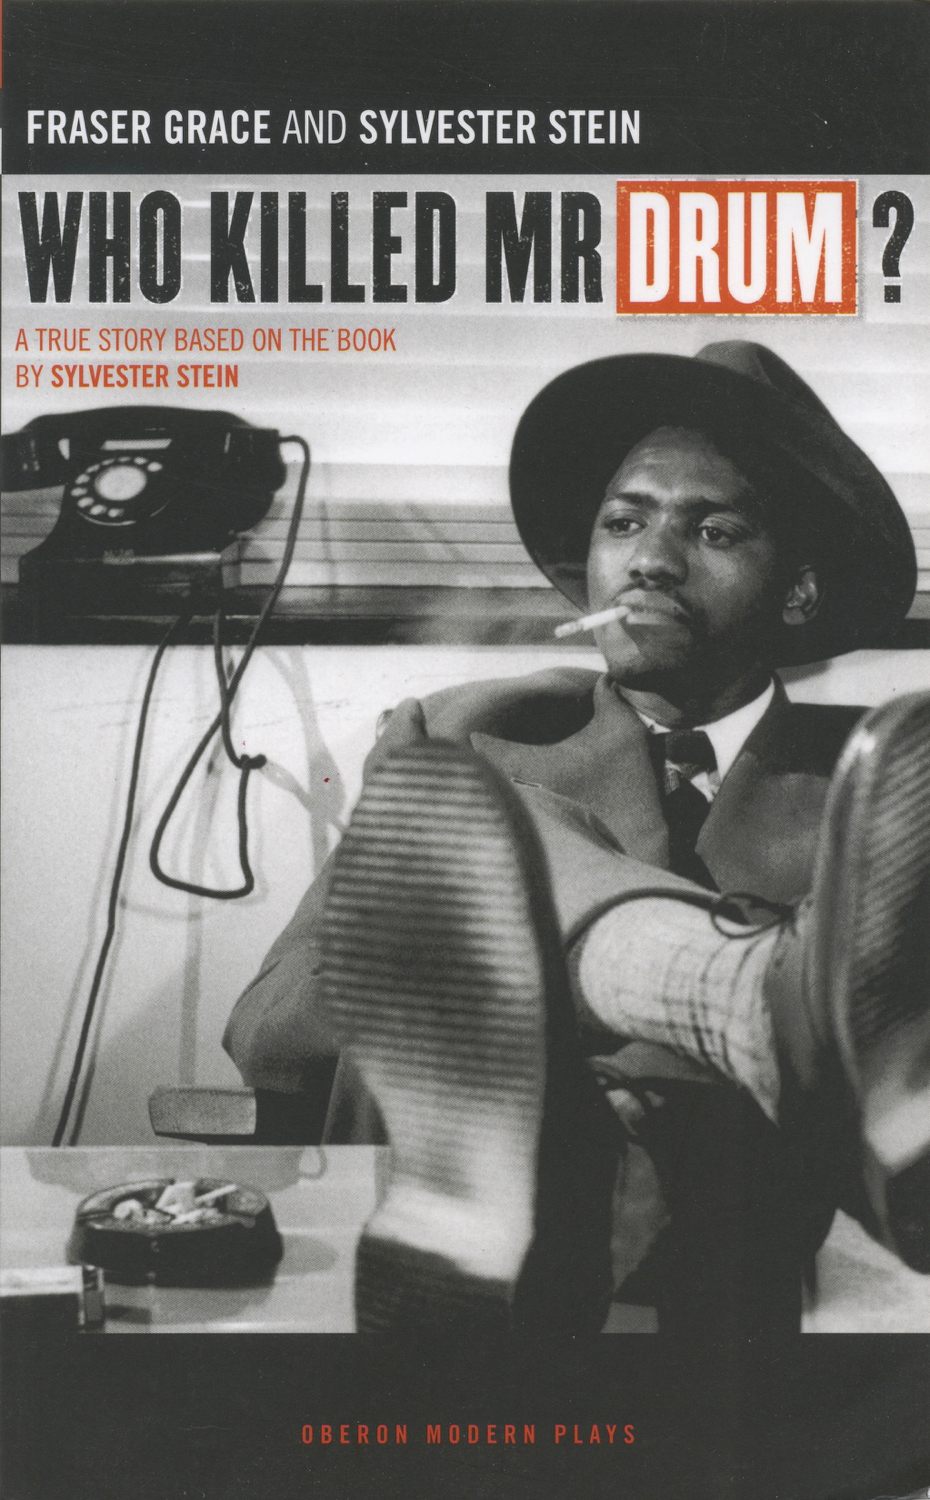 - 2005 The play Who Killed Mr Drum? by Fraser Grace and Sylvester Stein, based on the book by Sylvester, was put on at The Riverside Studios, directed by Paul Robinson and starring Sello Ncube and Lucian Msamati.